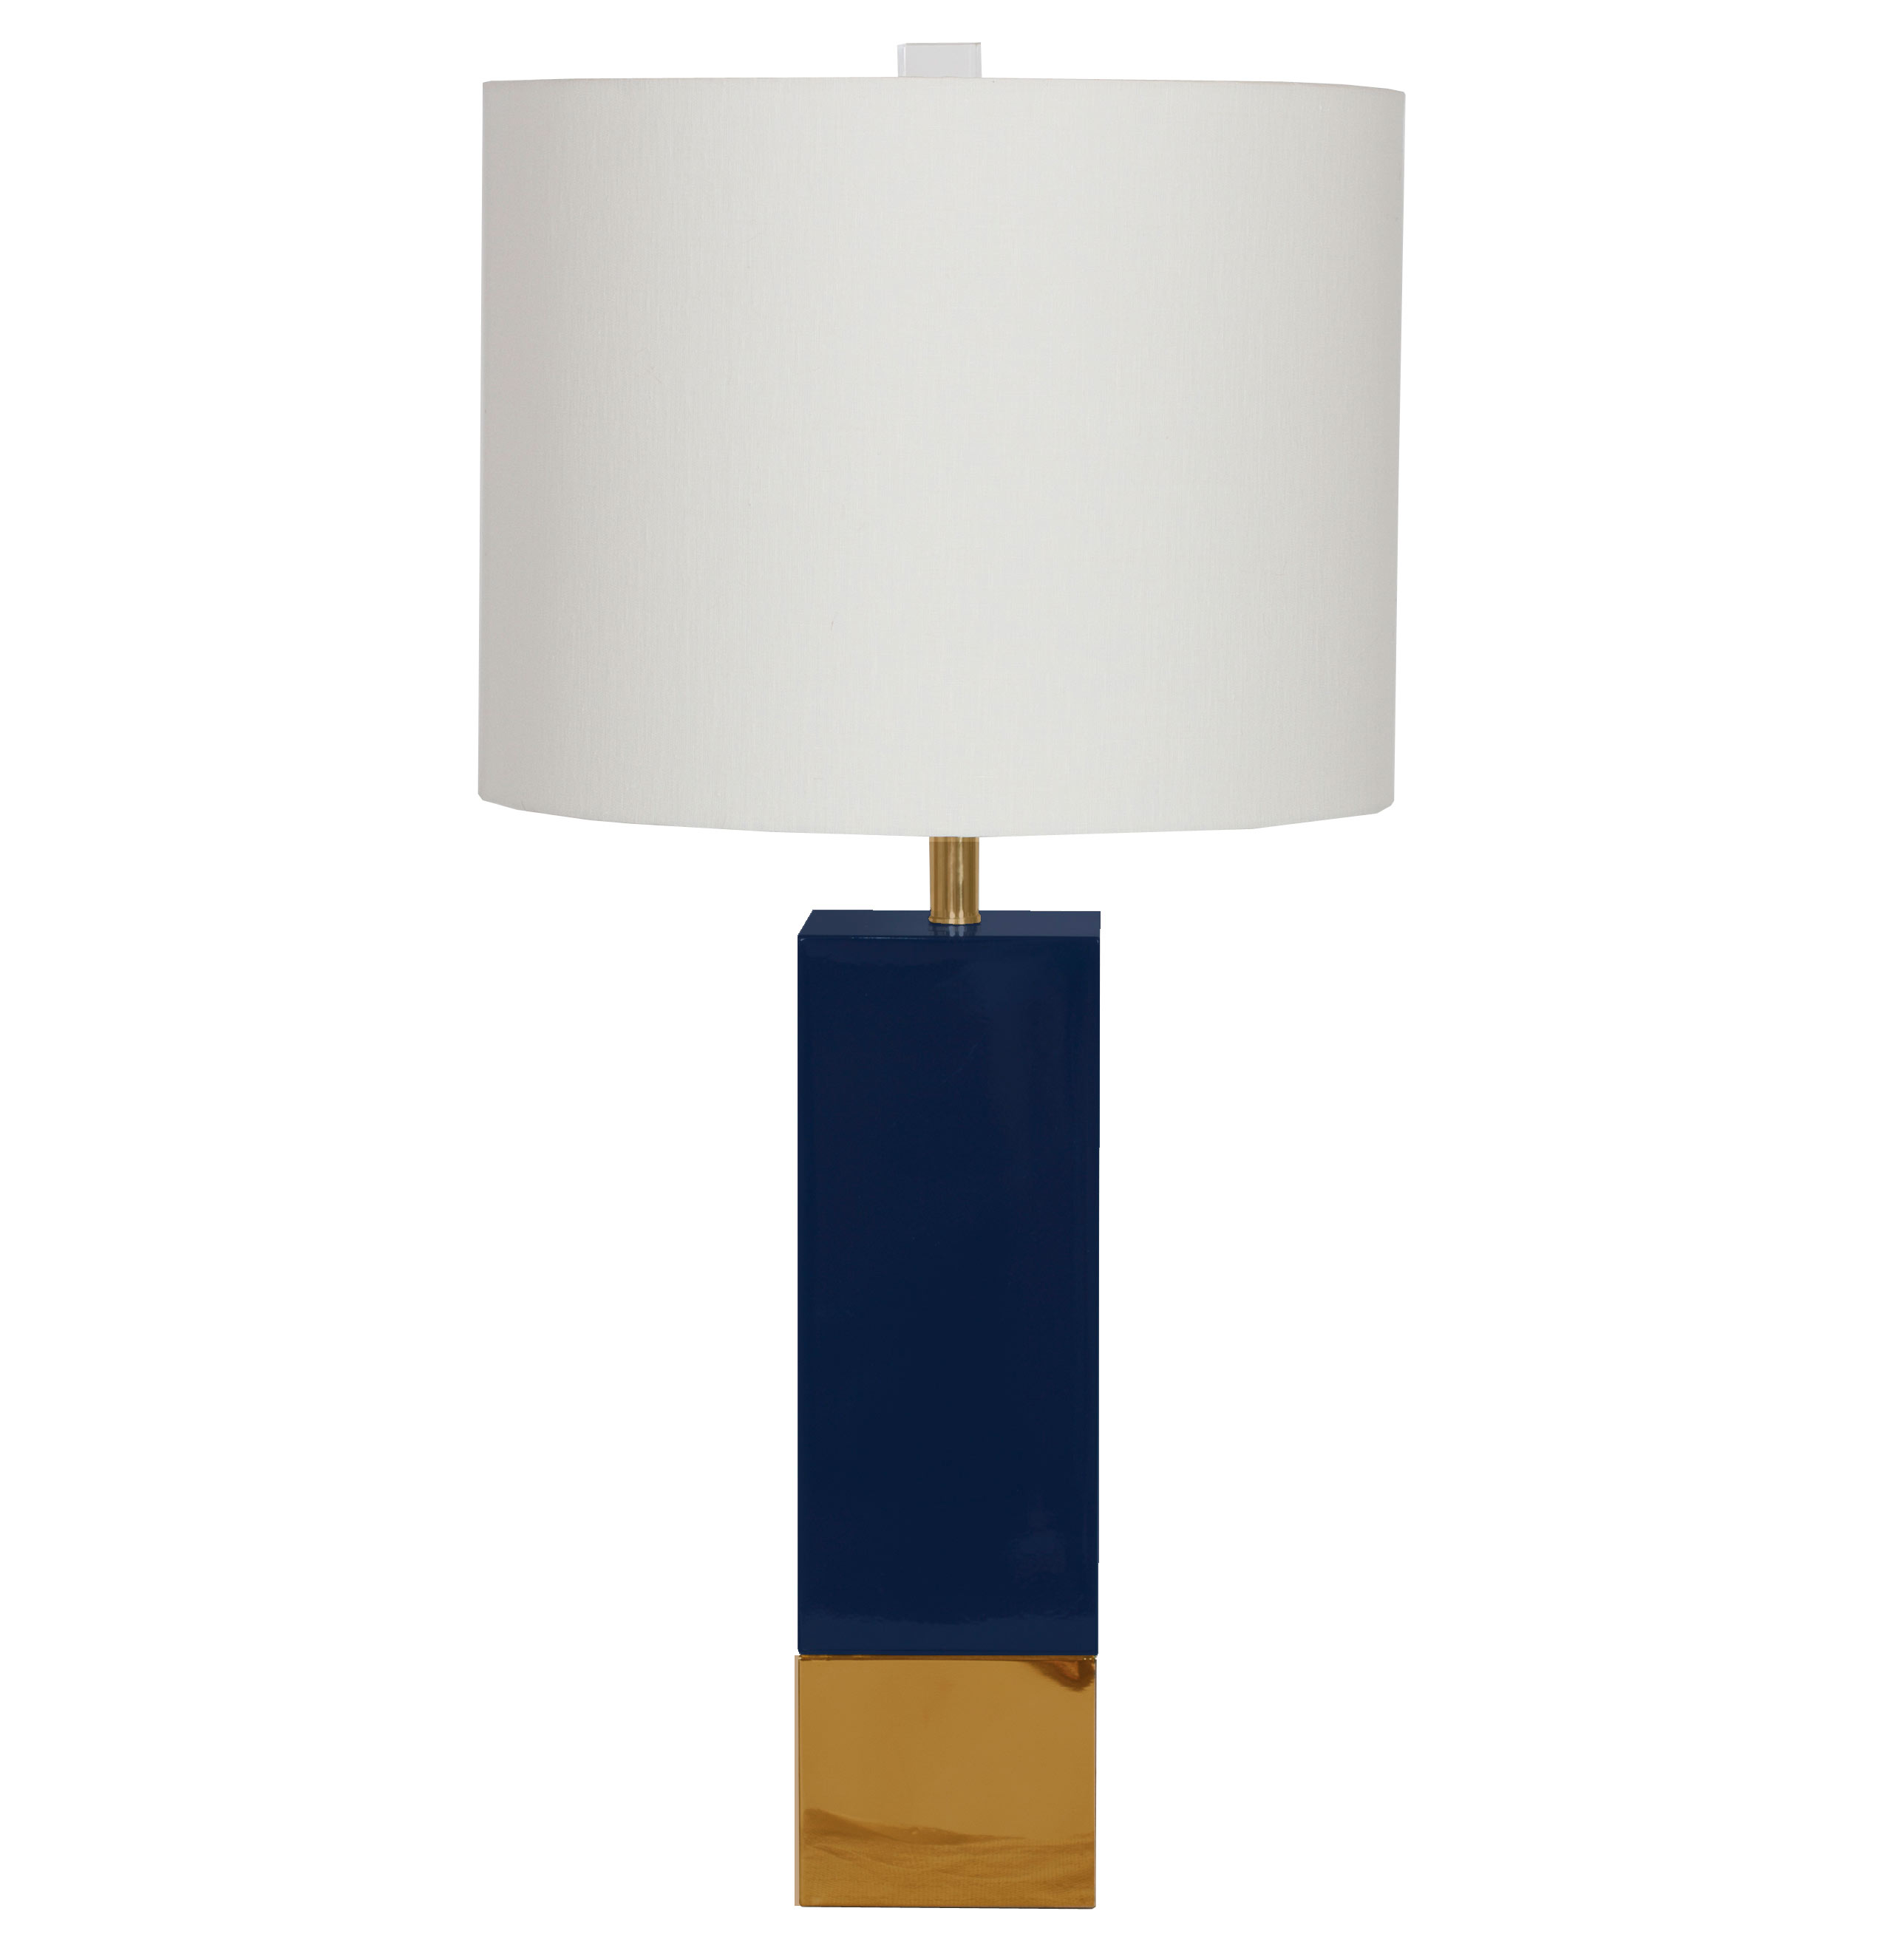 Titan Hollywood Regency Gold Navy Blue Square Table Lamp